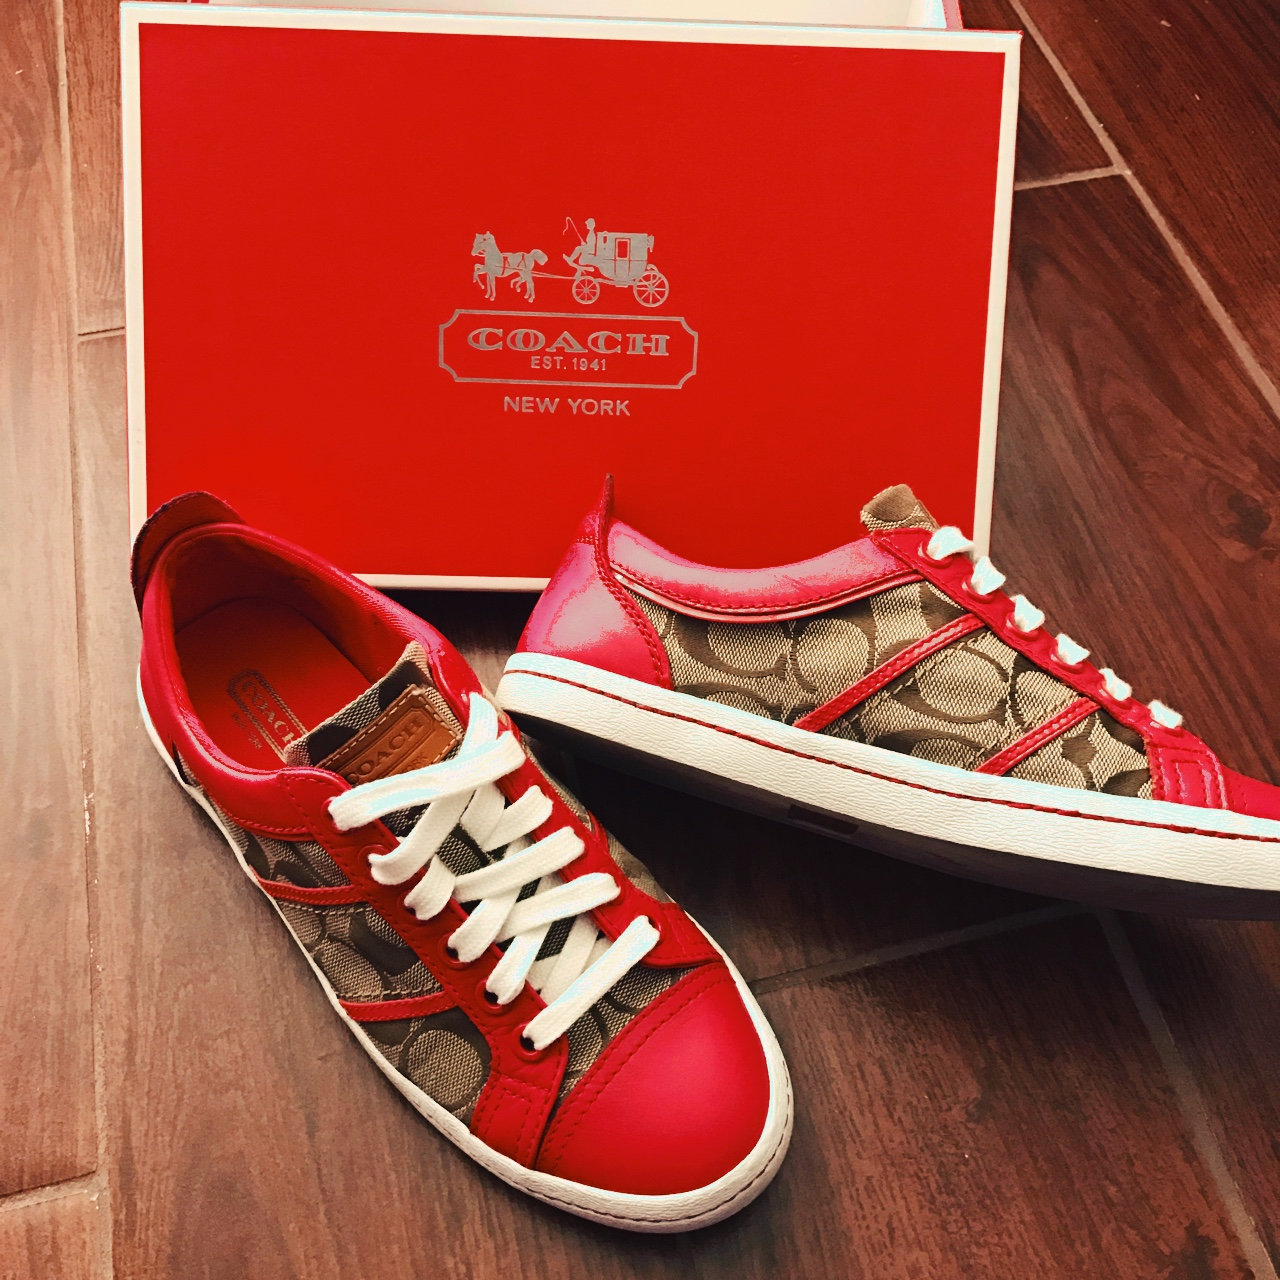 Coach tennis shoes. Red, white, and